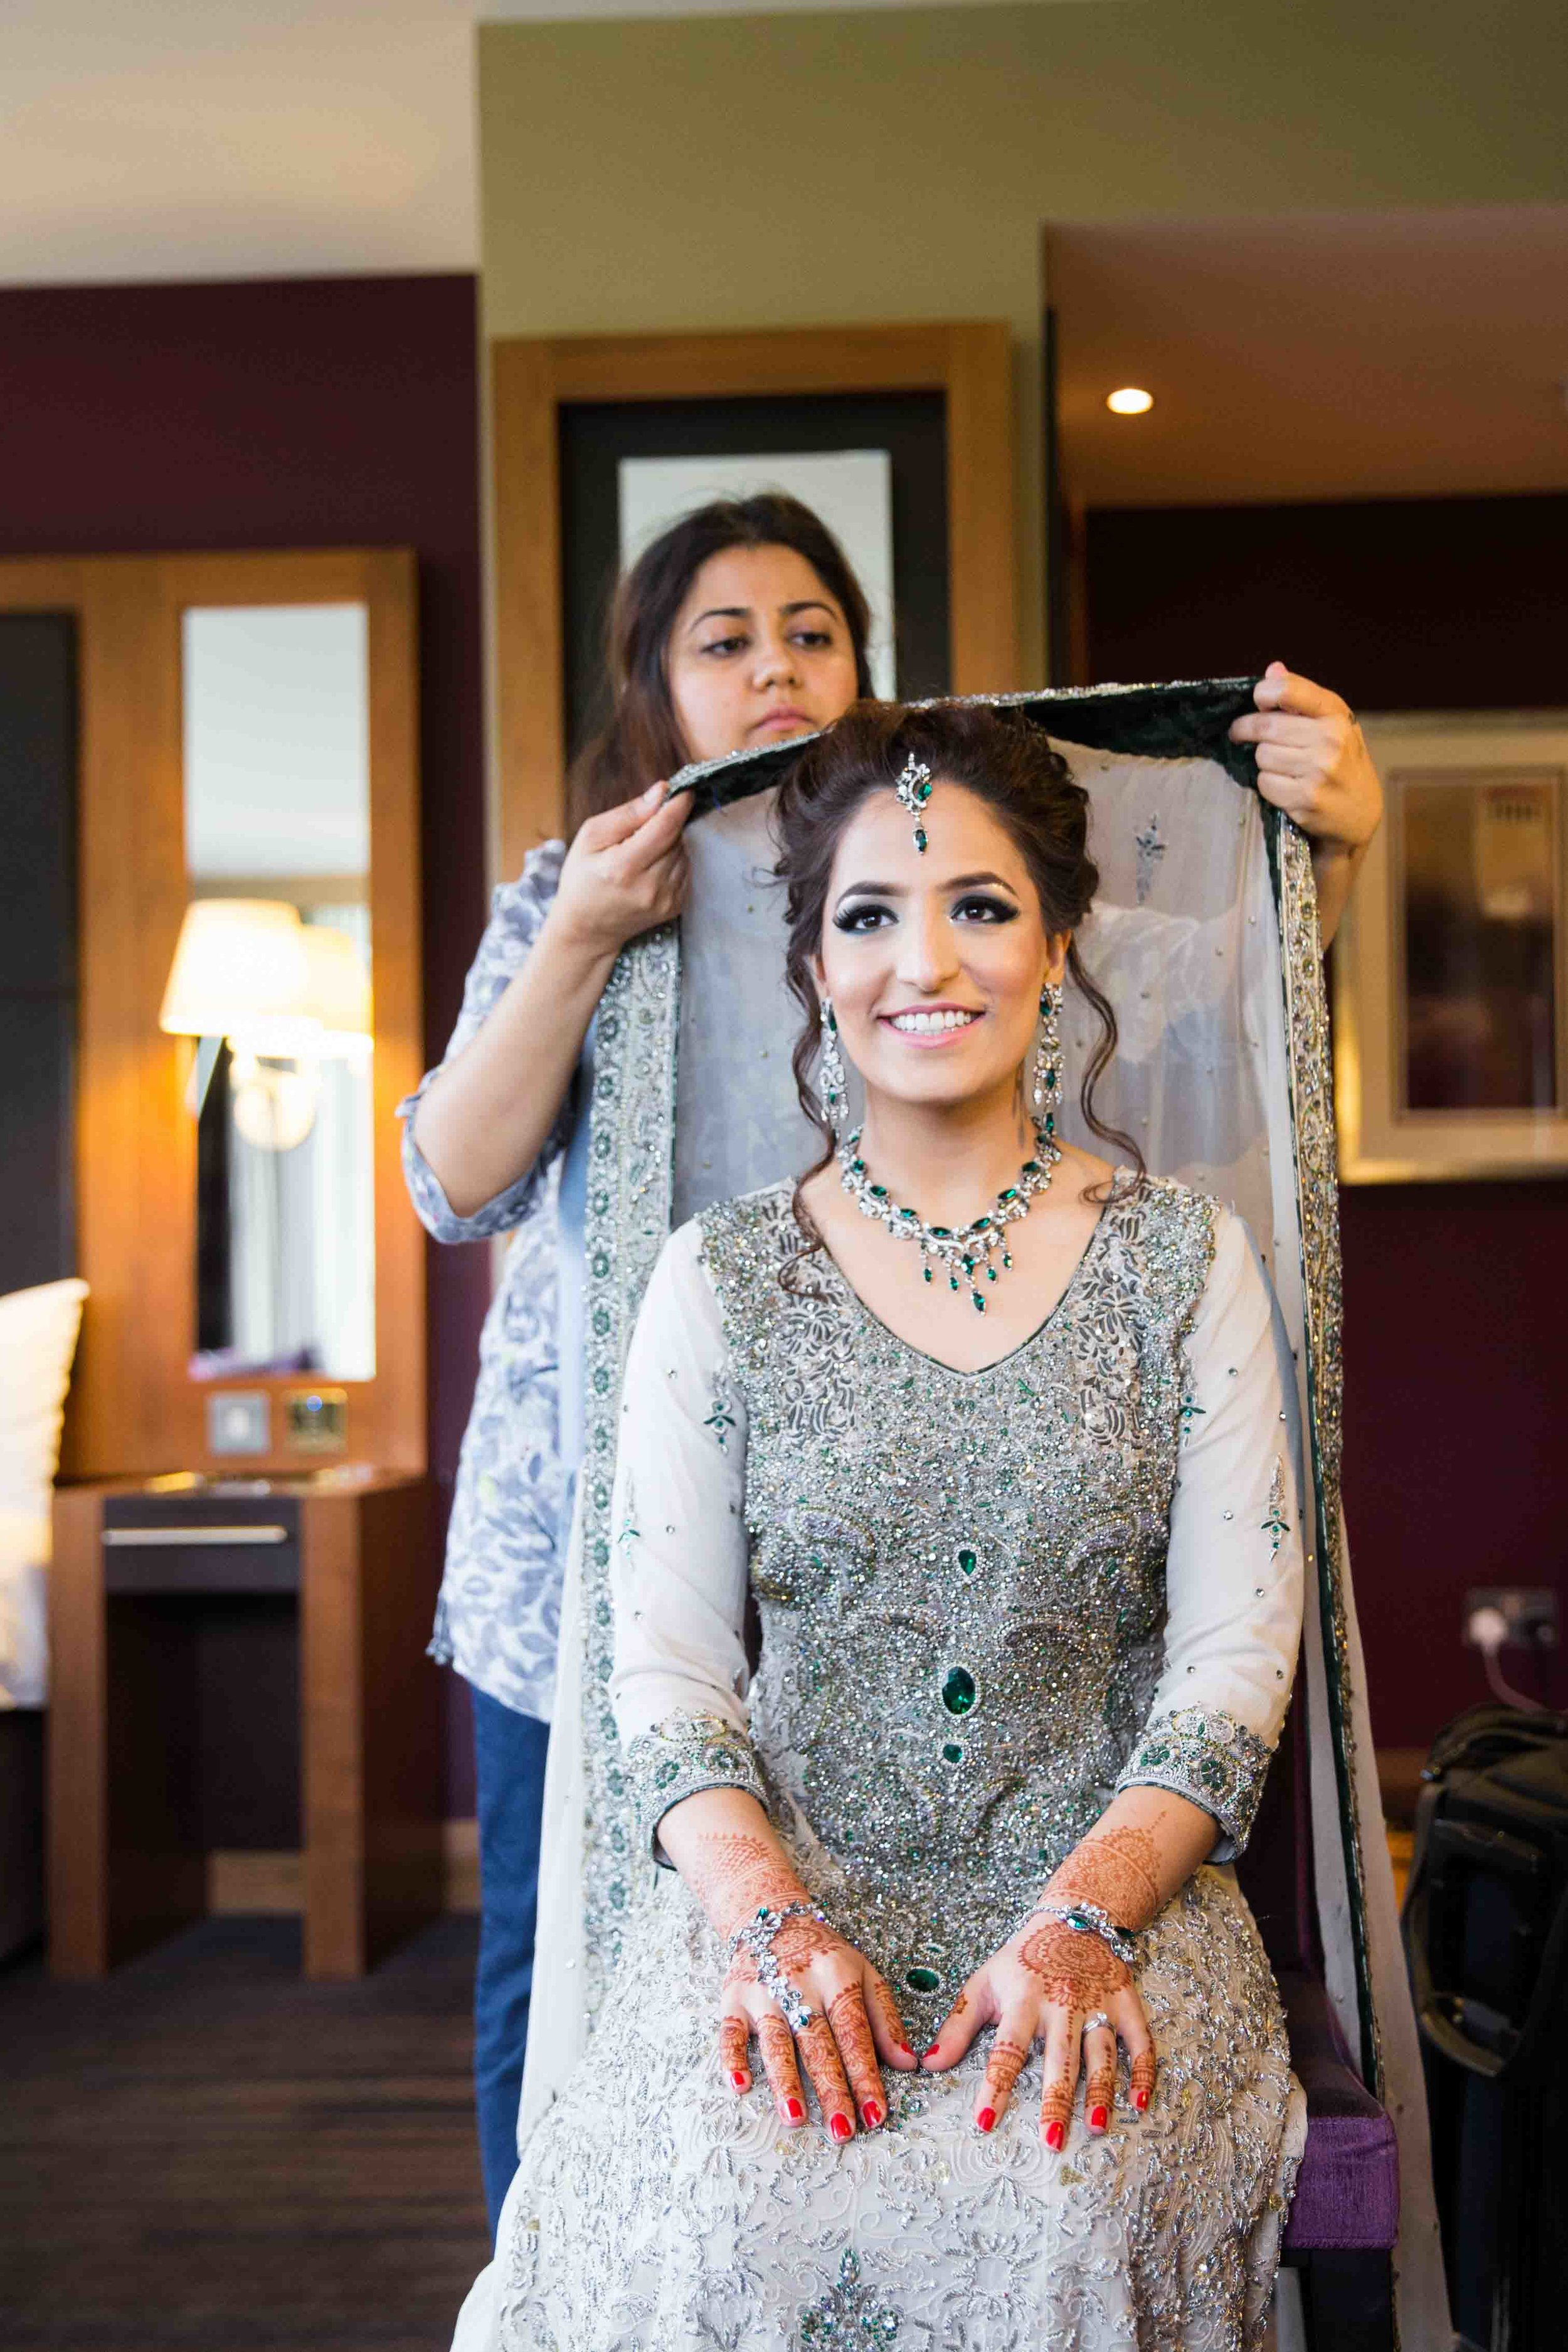 Opu Sultan Photography Asian wedding photography scotland edinburgh glasgow manchester birmingham london-3.jpg